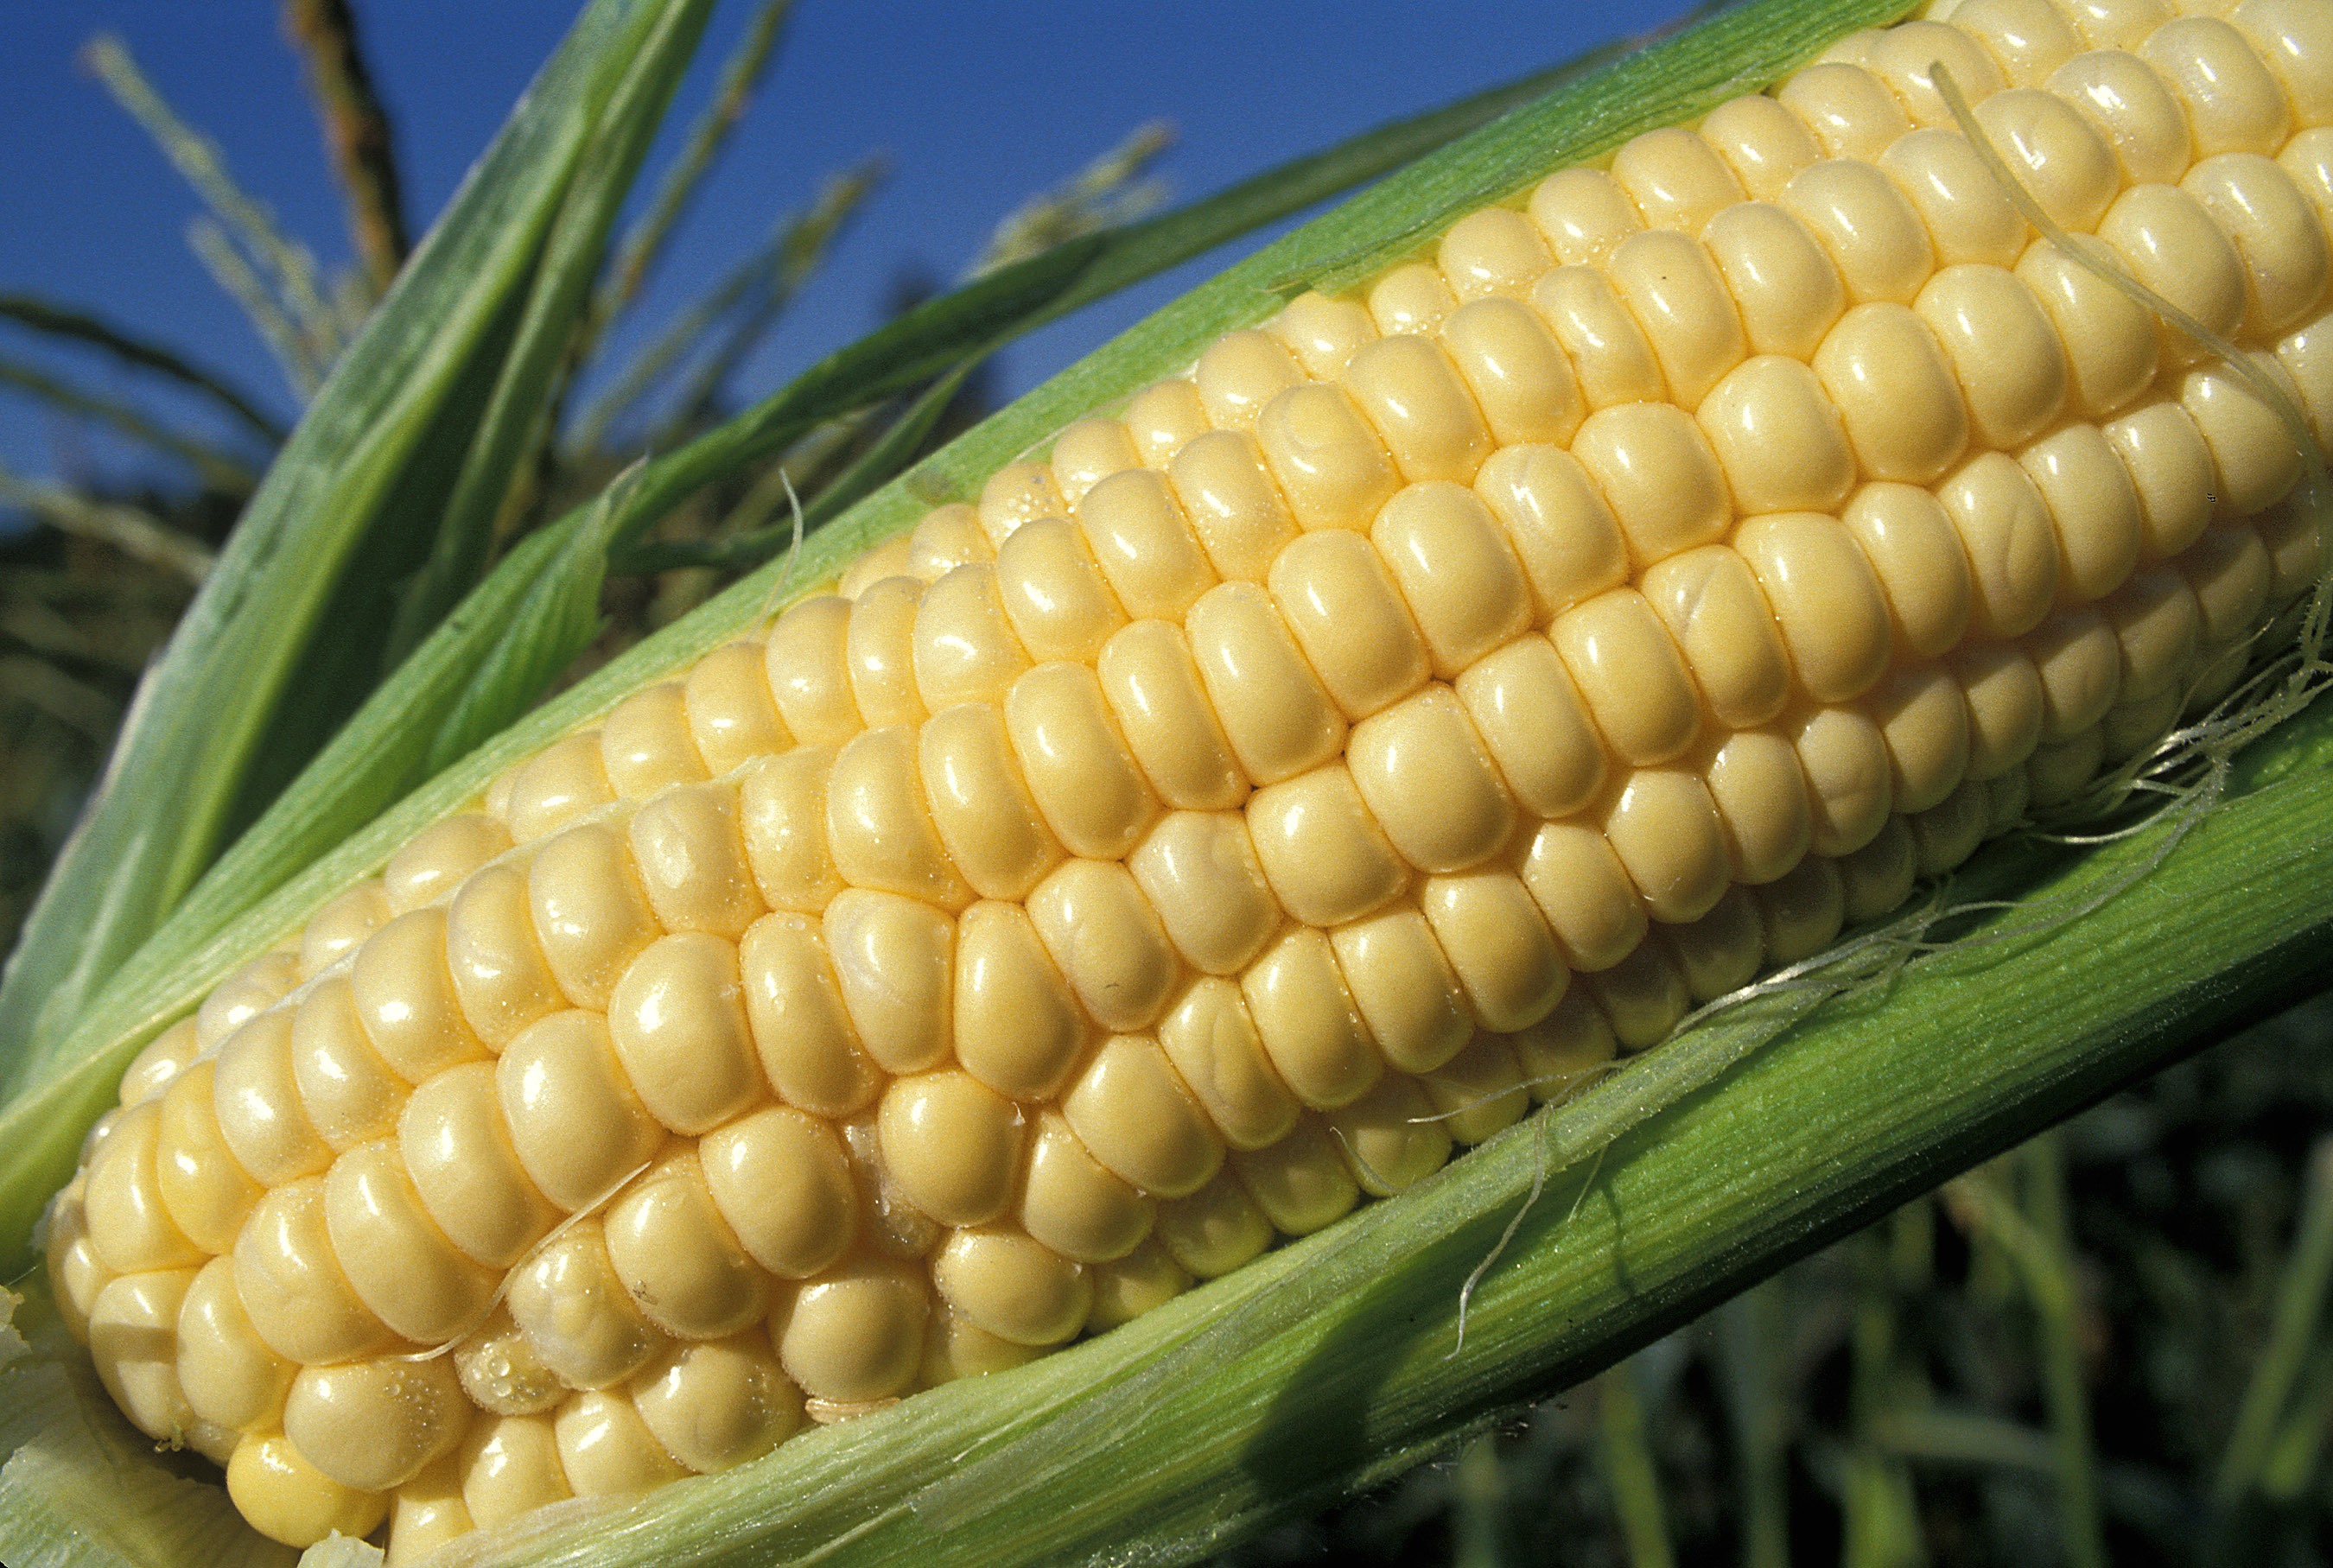 Close up - ear of corn